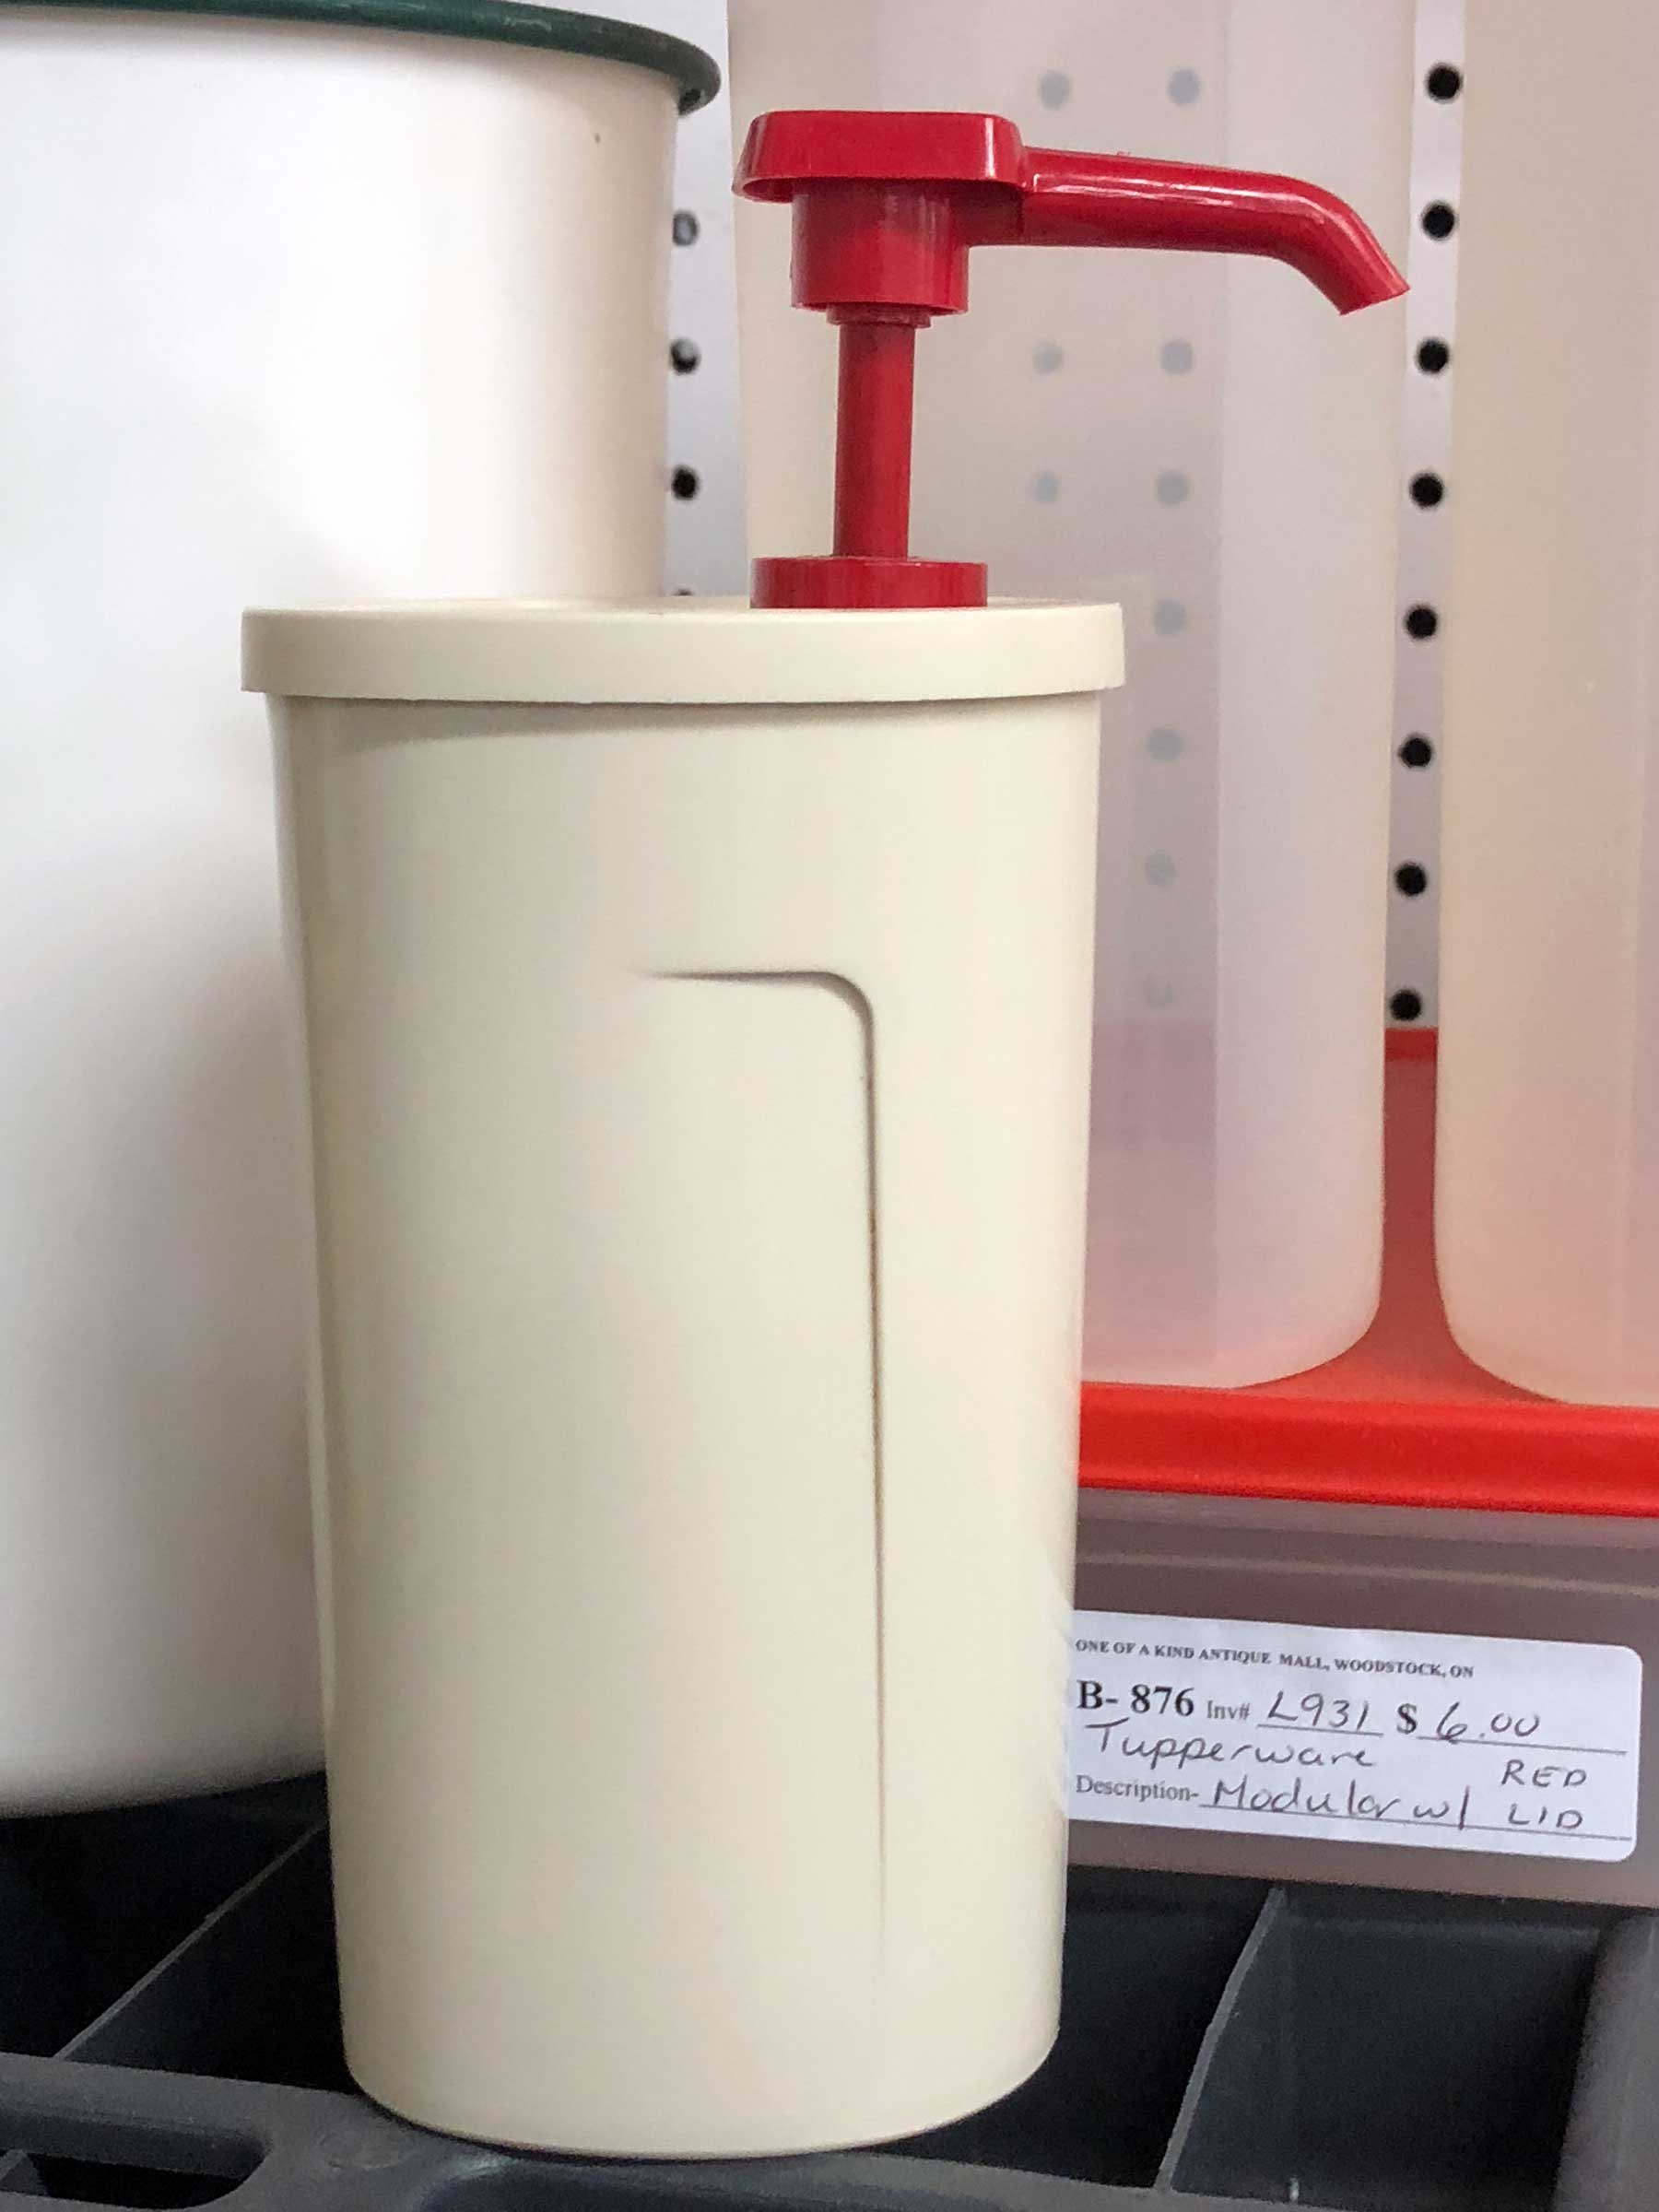 Tupperware ketchup dispenser with red pump